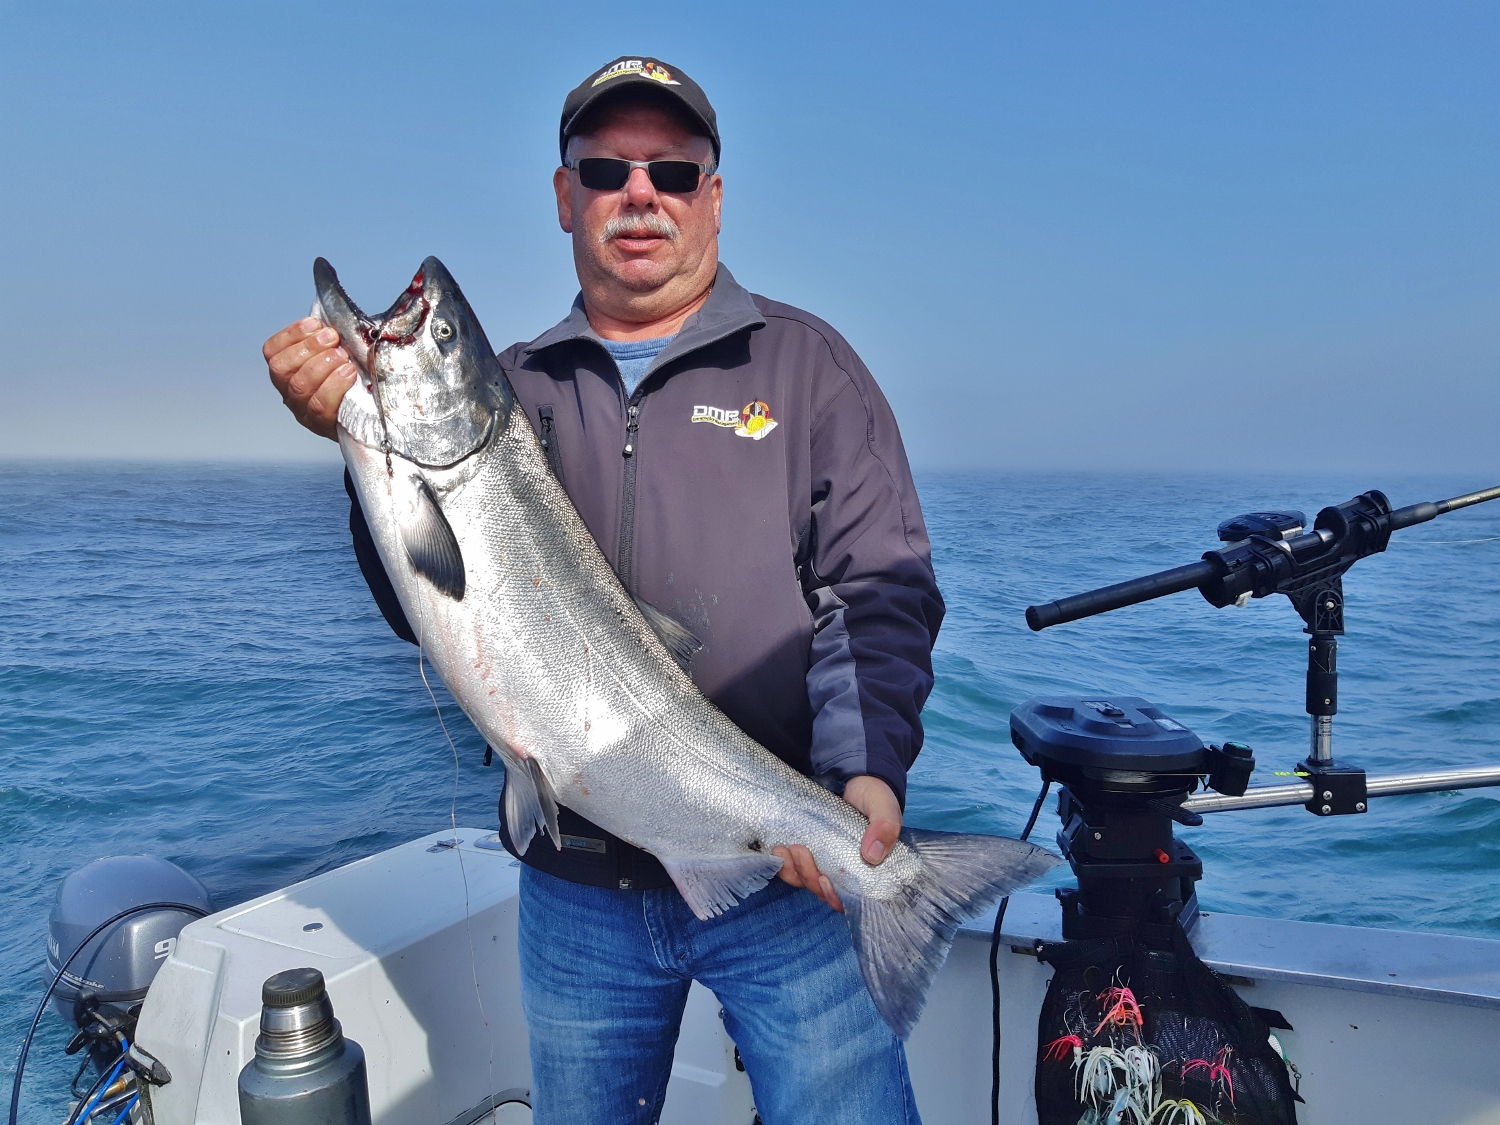 Sooke, British Columbia Fishing Report